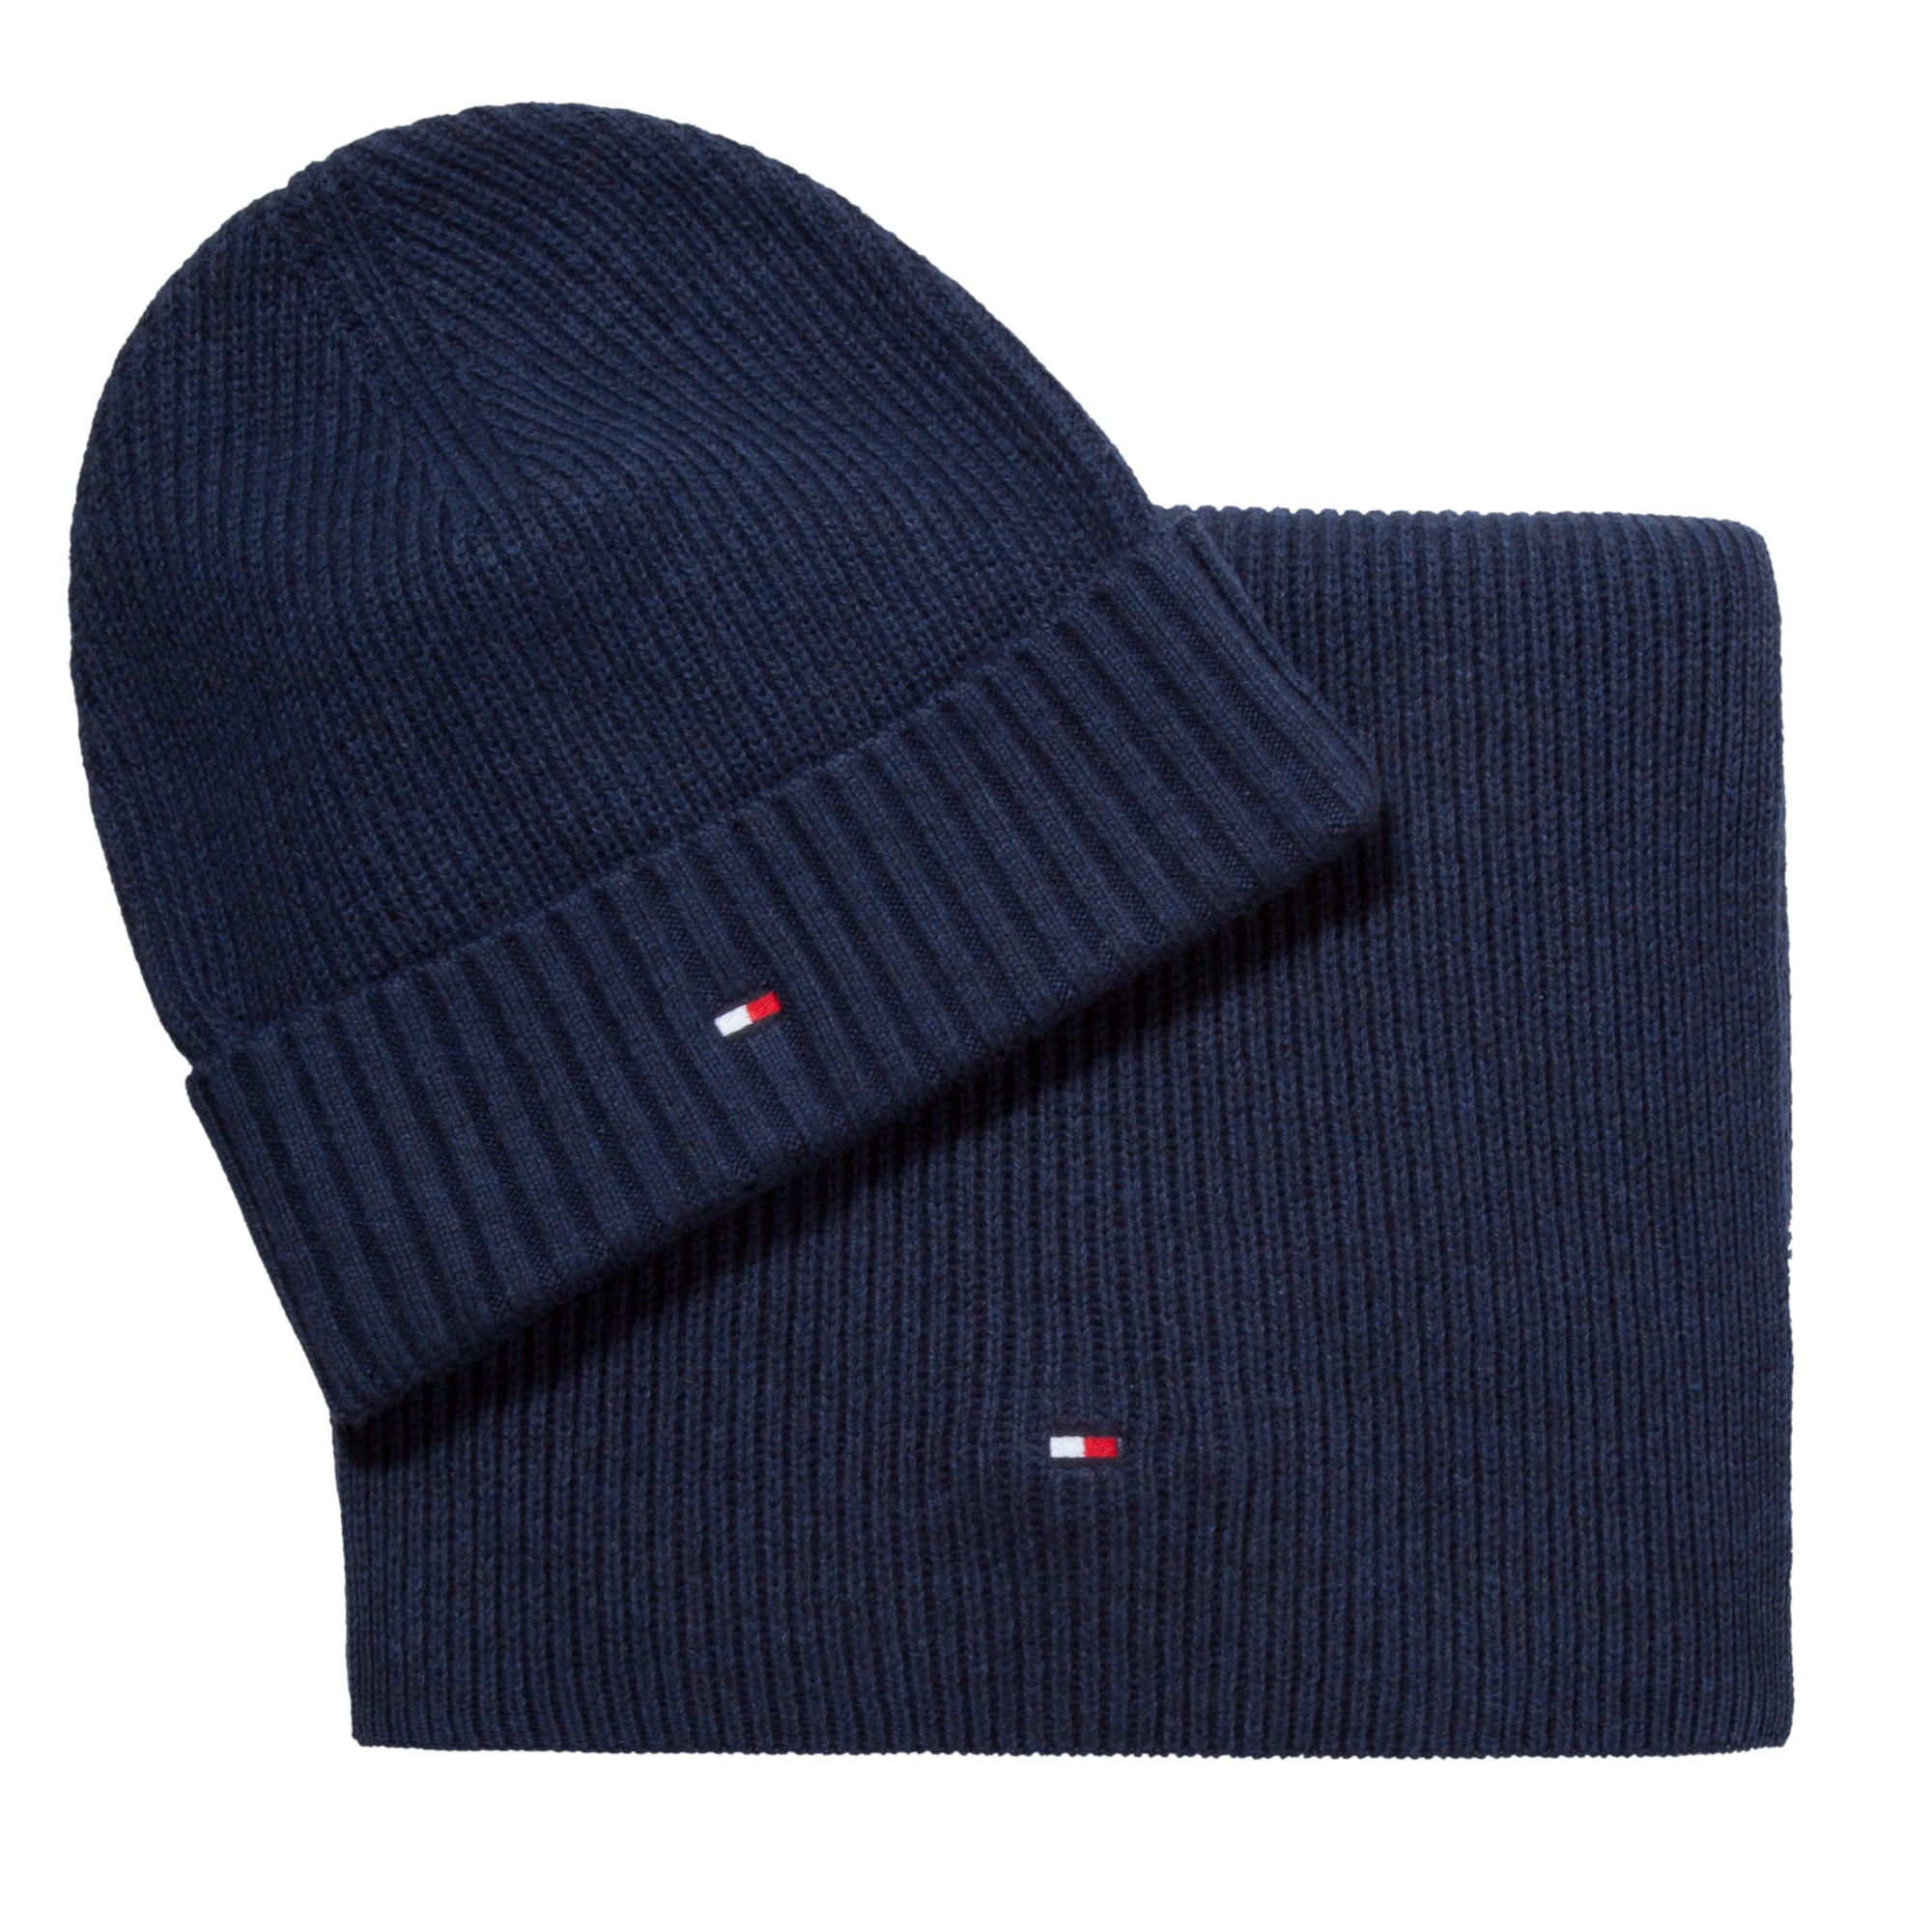 Tommy Hilfiger Hat And Scarf Set in Blue for Men - Lyst 9f54d3e5557